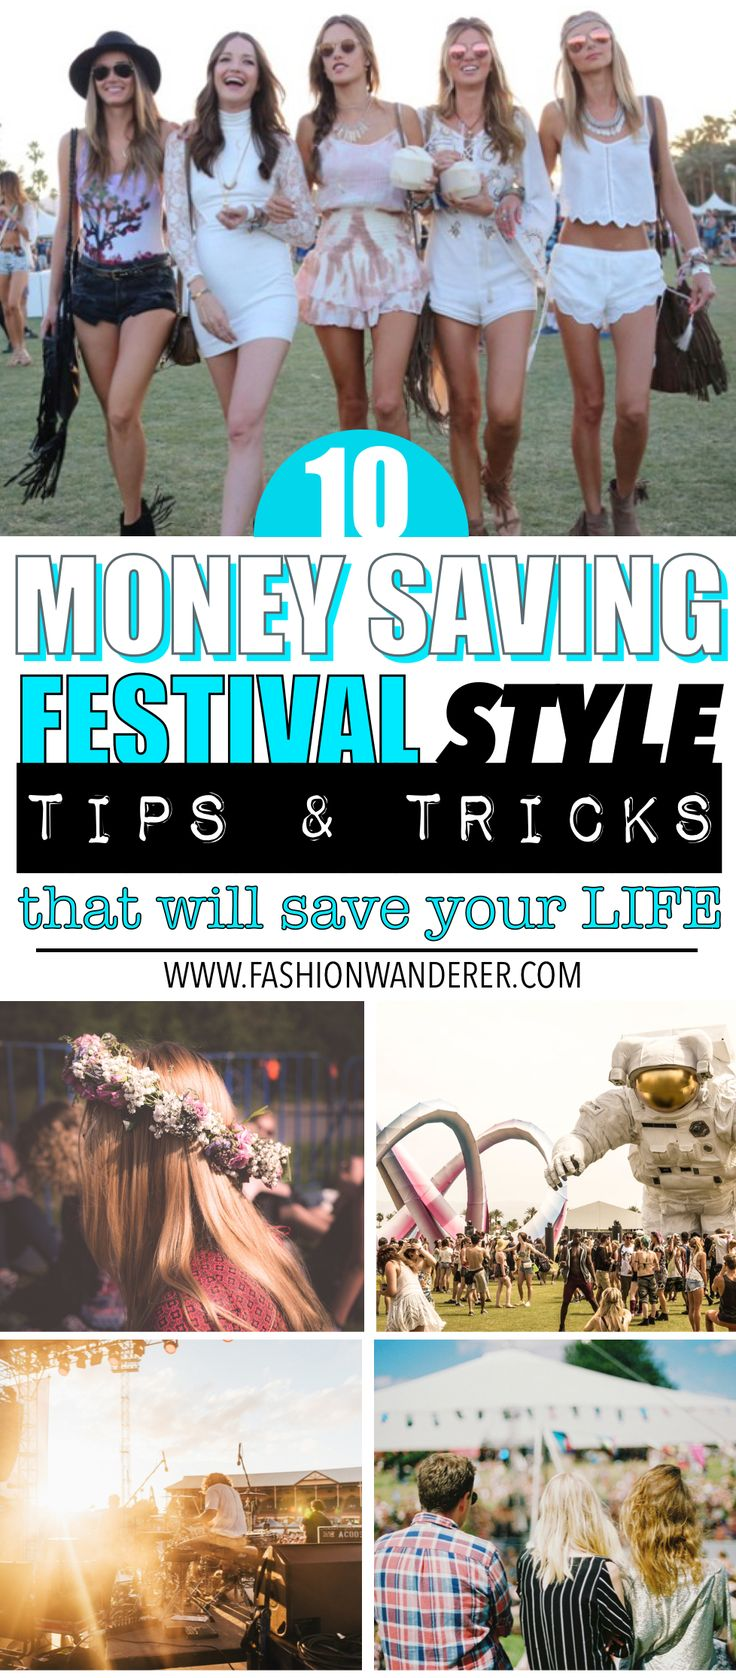 These top 10 genius money saving FESTIVAL STYLE tips are THE BEST! I'm so glad to find these AWESOME tips not only they are budget friendly but also you can use your wardrobe, participate Facebook group and many more money saving tips and get your outfit together easily and quickly! Perfect tips for Festival Season! Definitely pinning!   #festivalfashion #festival #festivalstyle #coachella #lollapalooza #lifeisbeautiful #outfitideas #musicfestival #edm #burningman #tomorrowland  #bohofashion